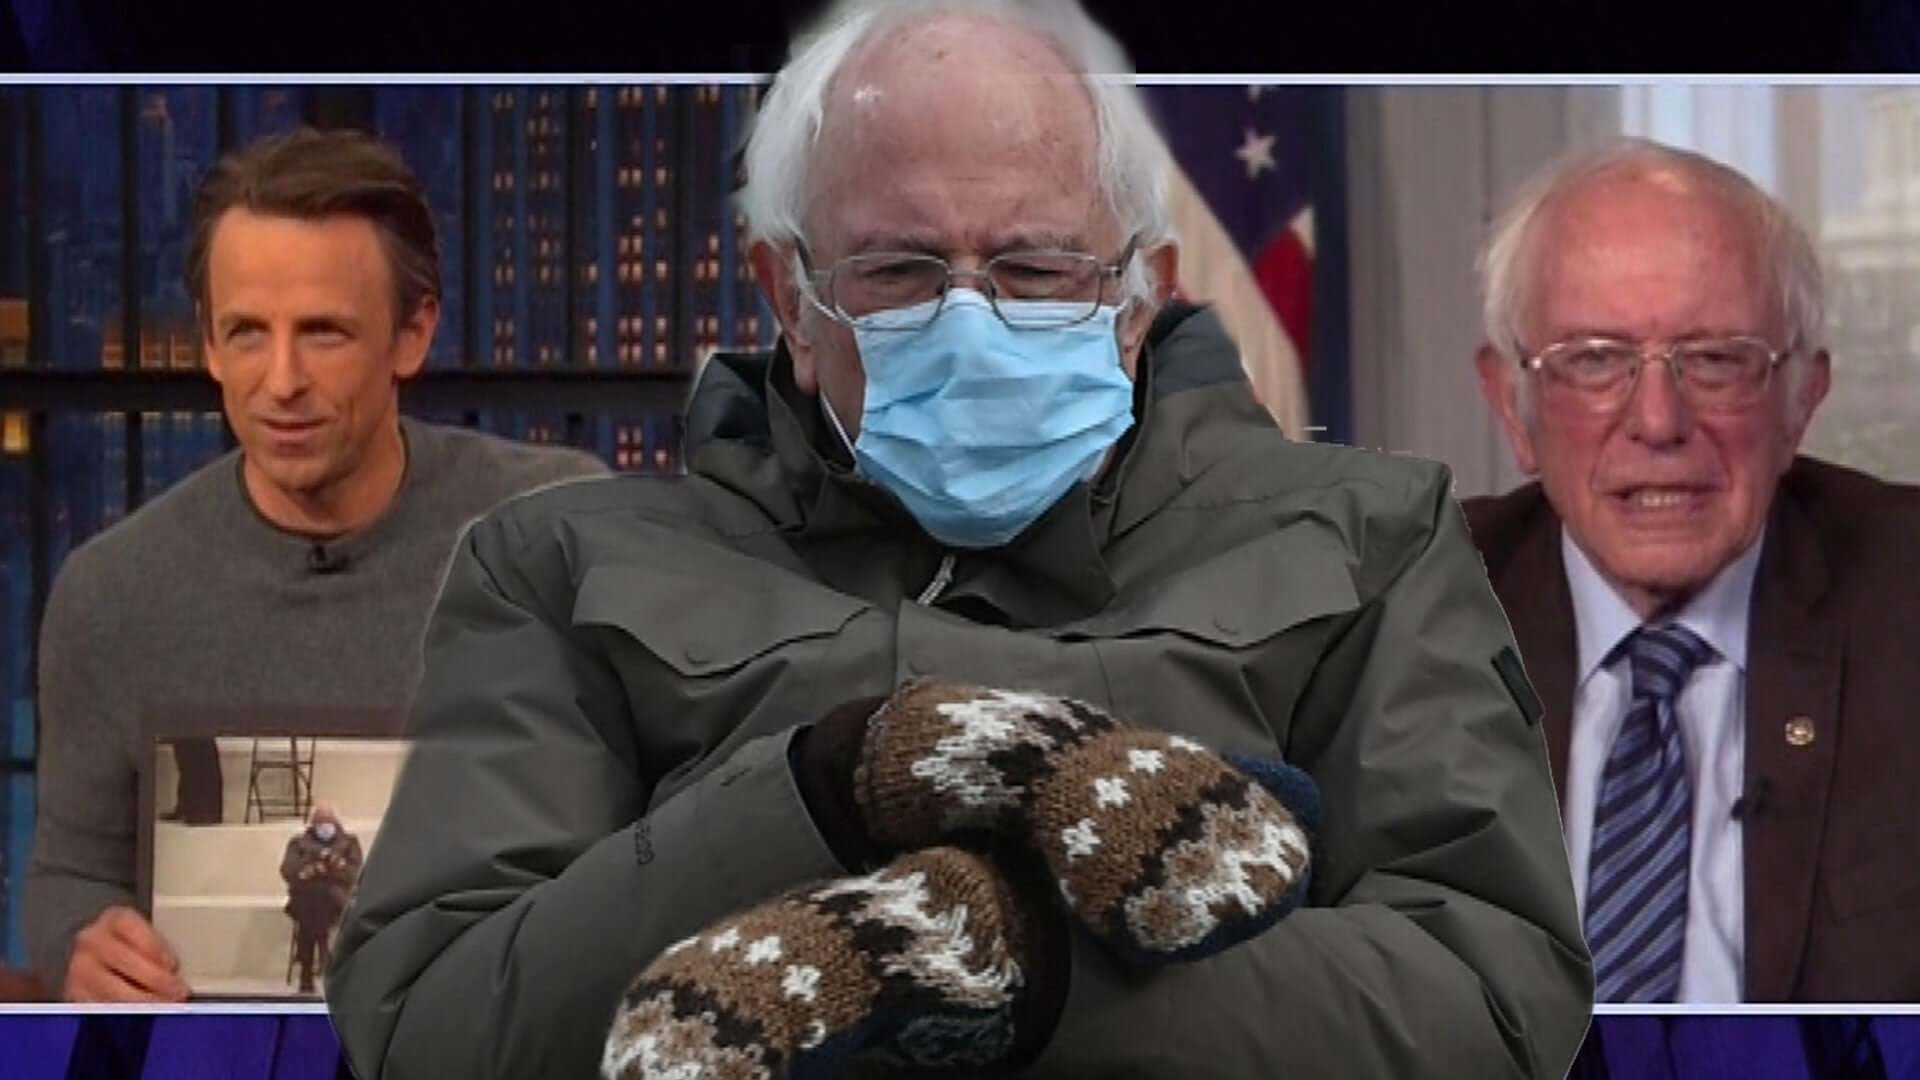 Ed Boon posted a famous meme with Bernie Sanders in Mortal Kombat